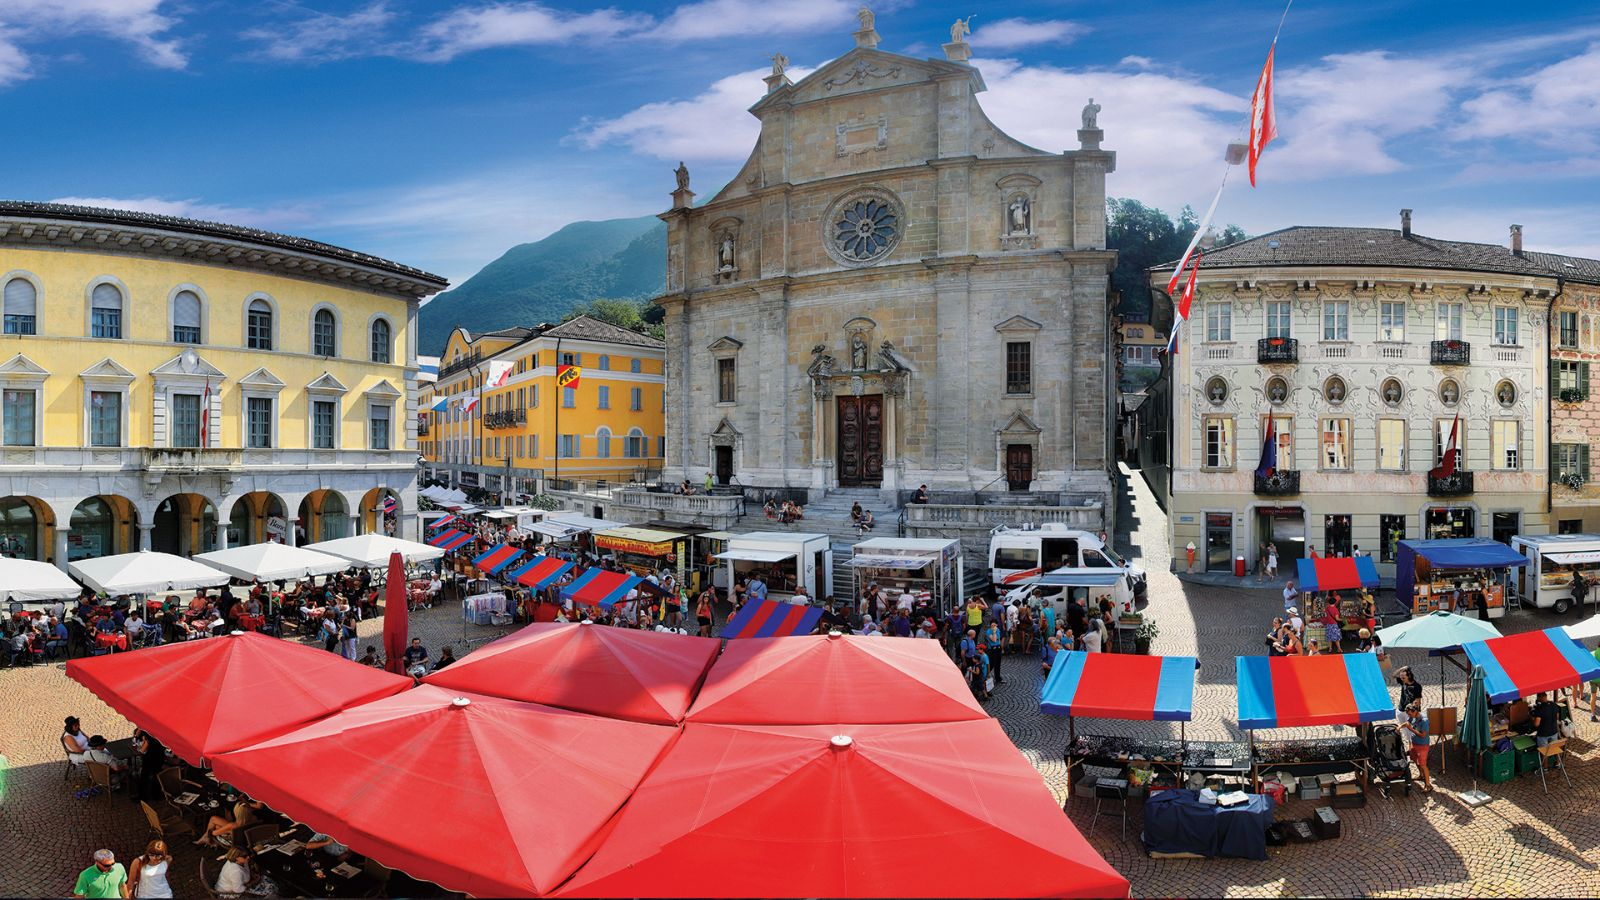 The market of Bellinzona